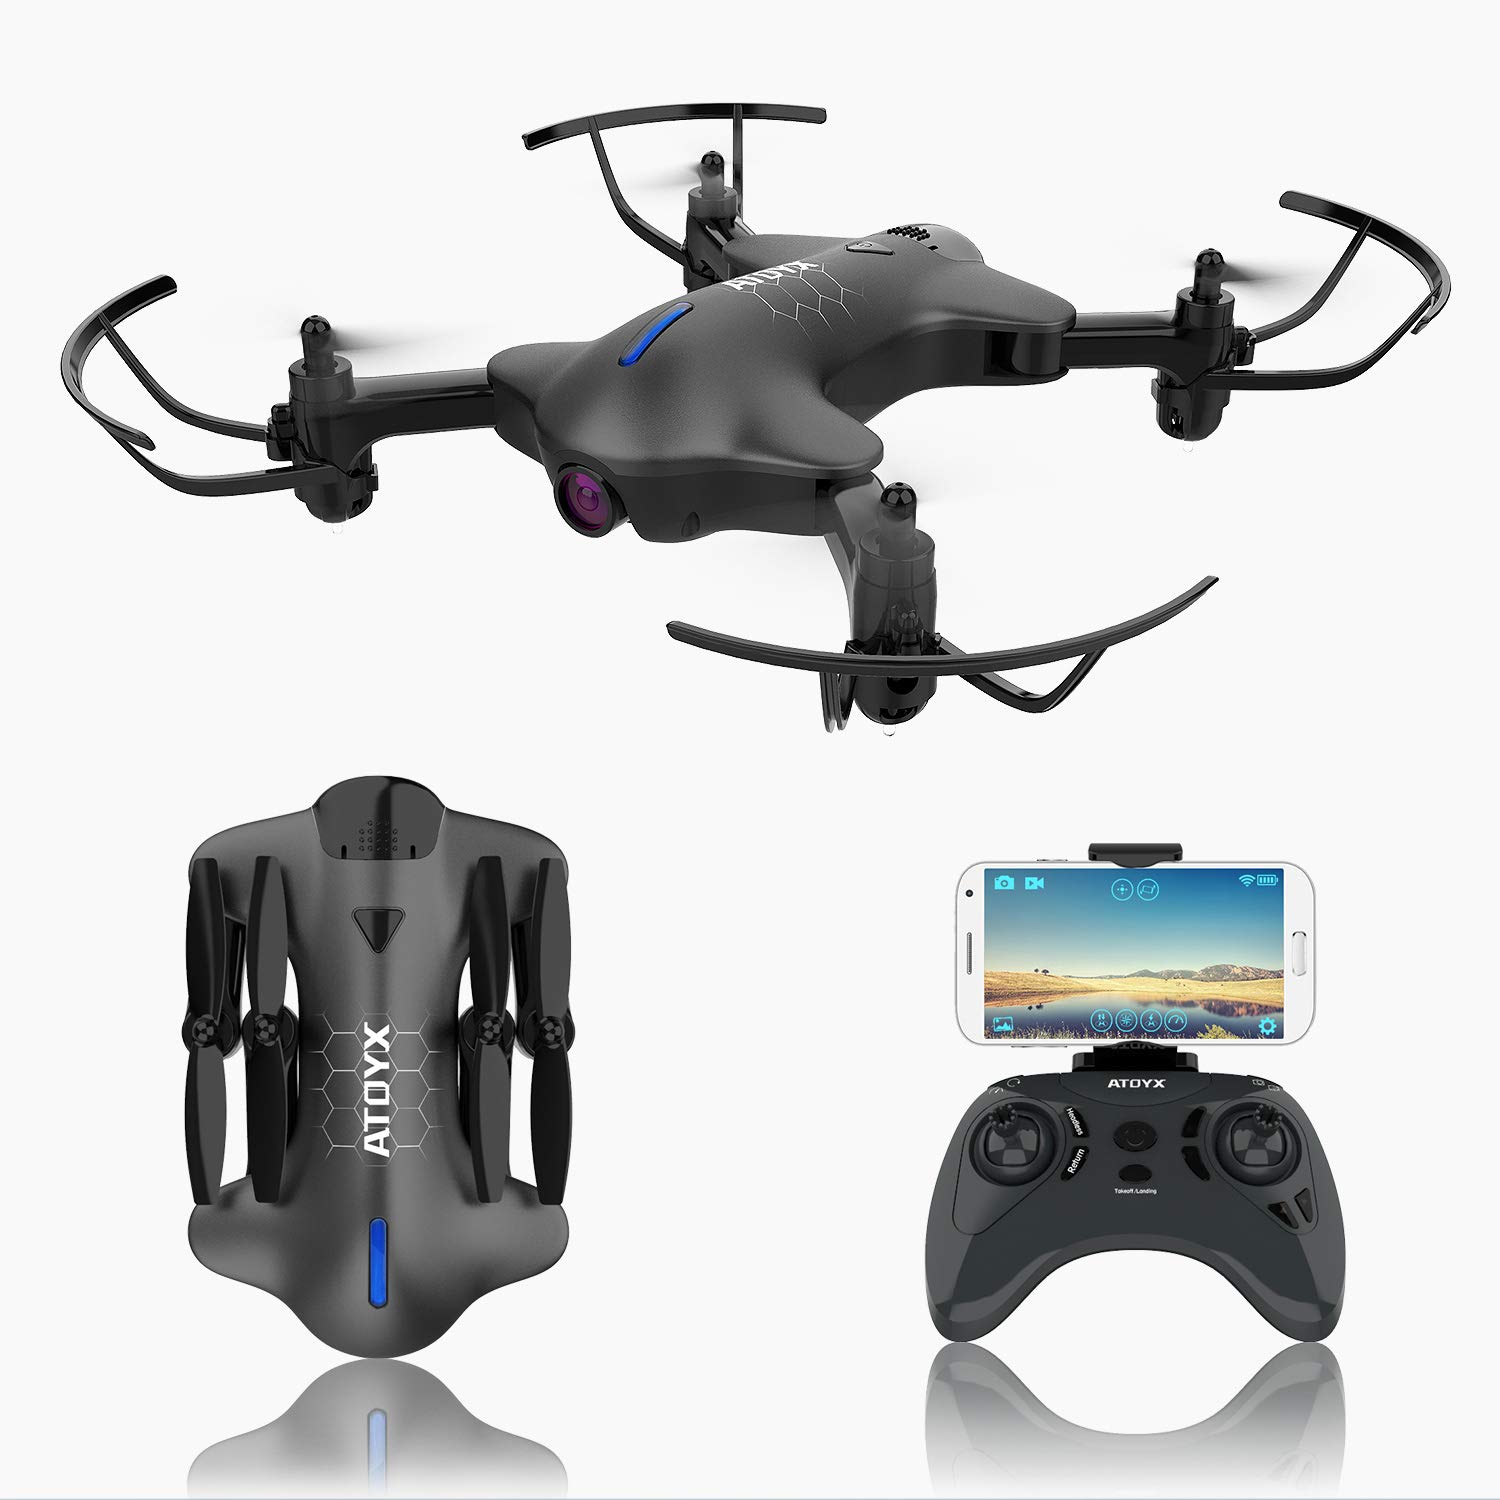 ATOYX AT-146 FPV Foldable RC Drone Black Optical Flow Position 720P Wide Angle HD Camera Live Video WiFi Quadcopter with Altitude Hold Headless Mode